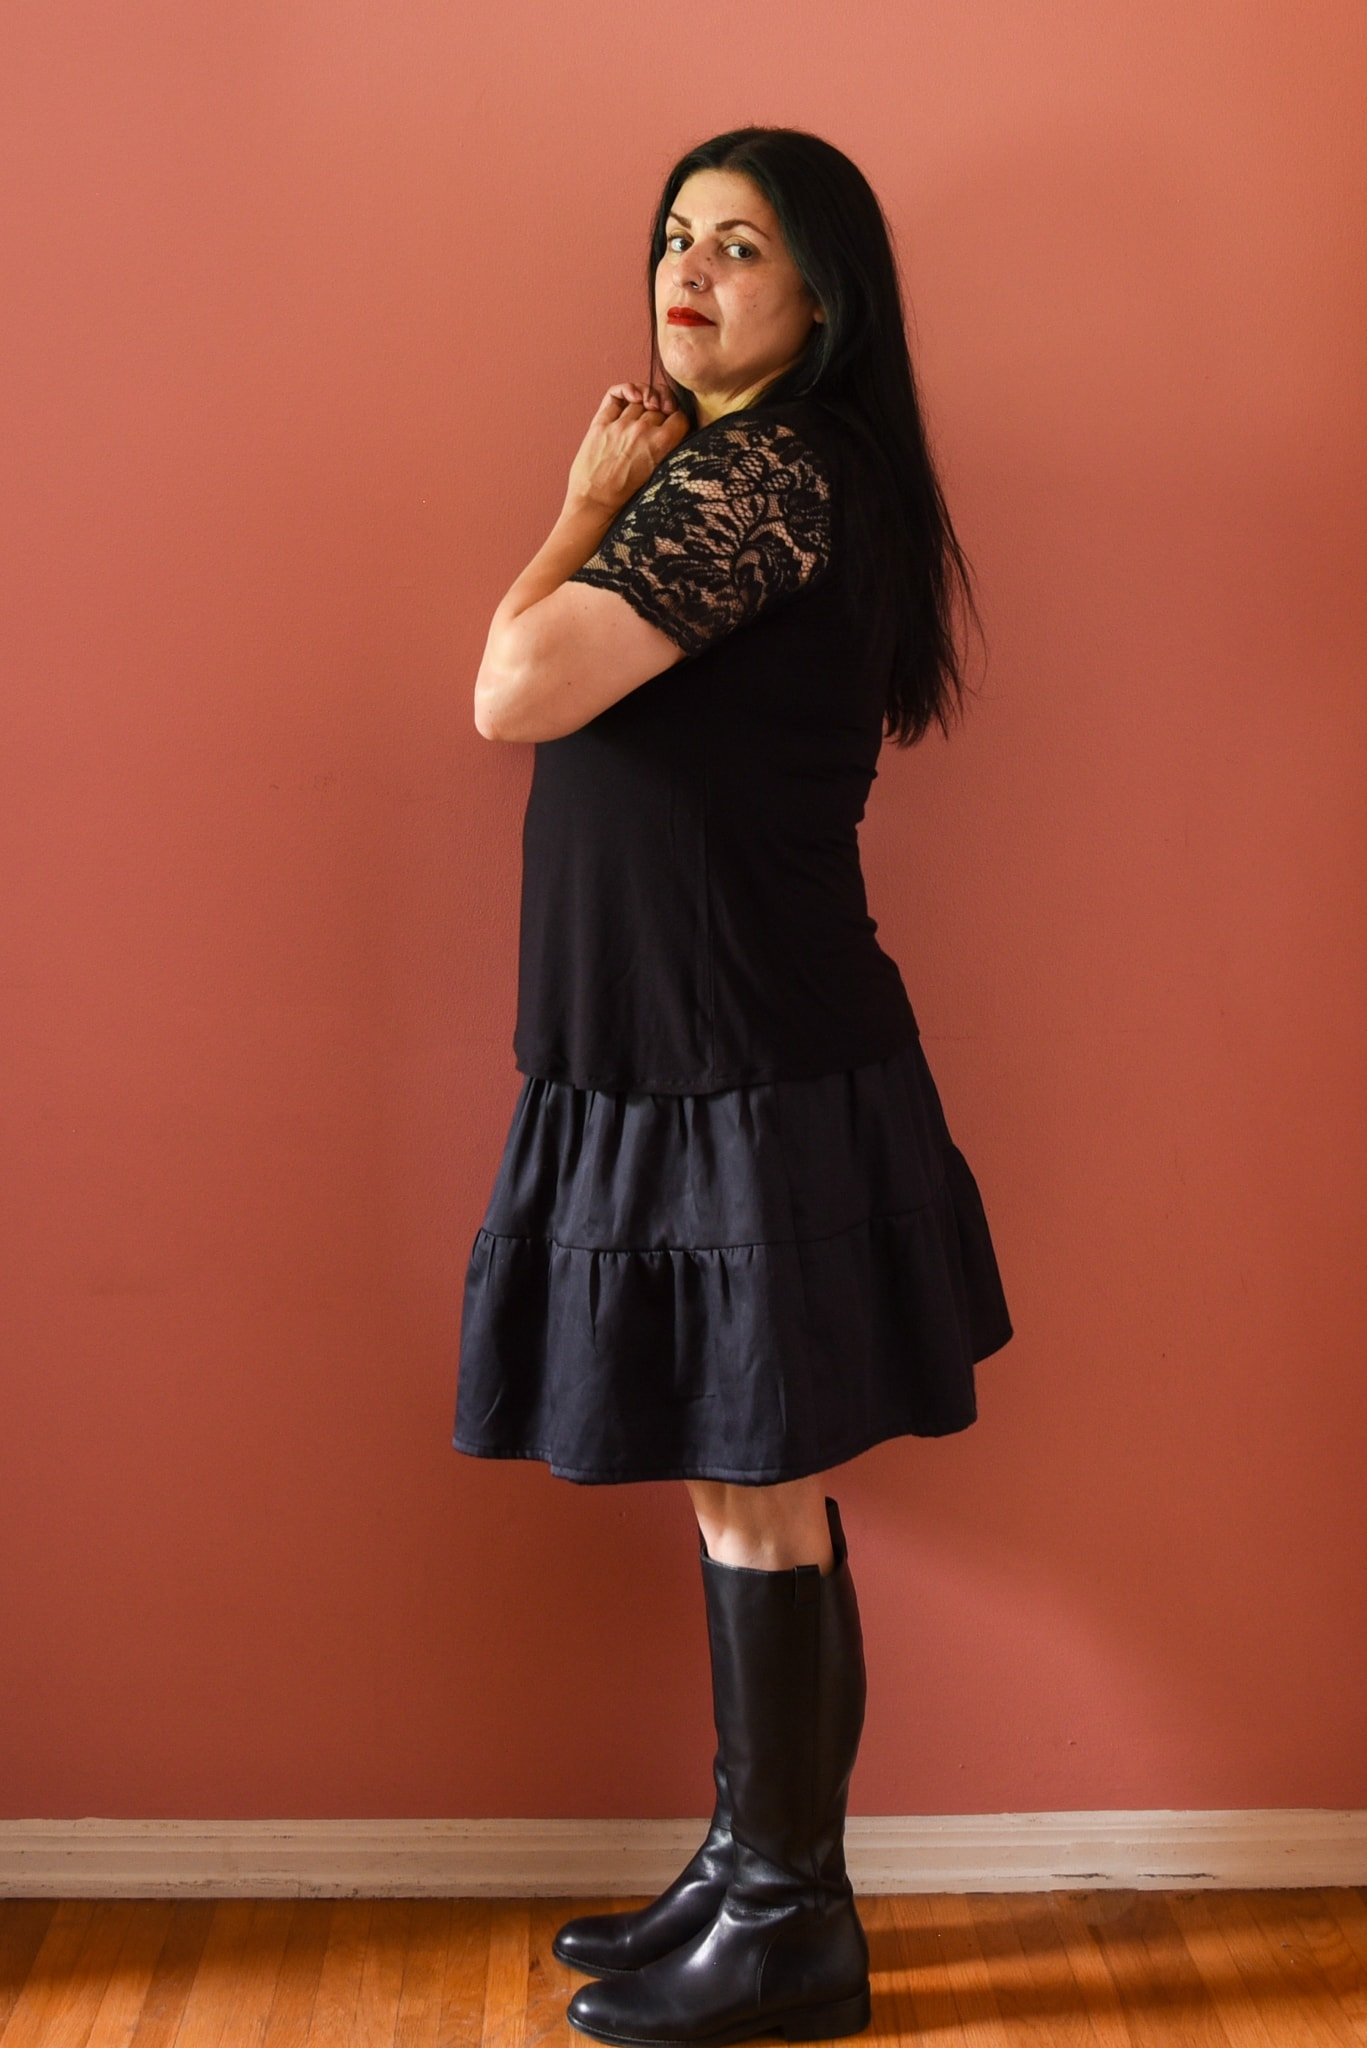 Image of a woman with long black hair standing sideways to the camera wearing a black top with lace sleeves, a black skirt with gathered panels, knee-high black books standing in front of a pink wall holding the skirt up to expose the lining of the skirt.